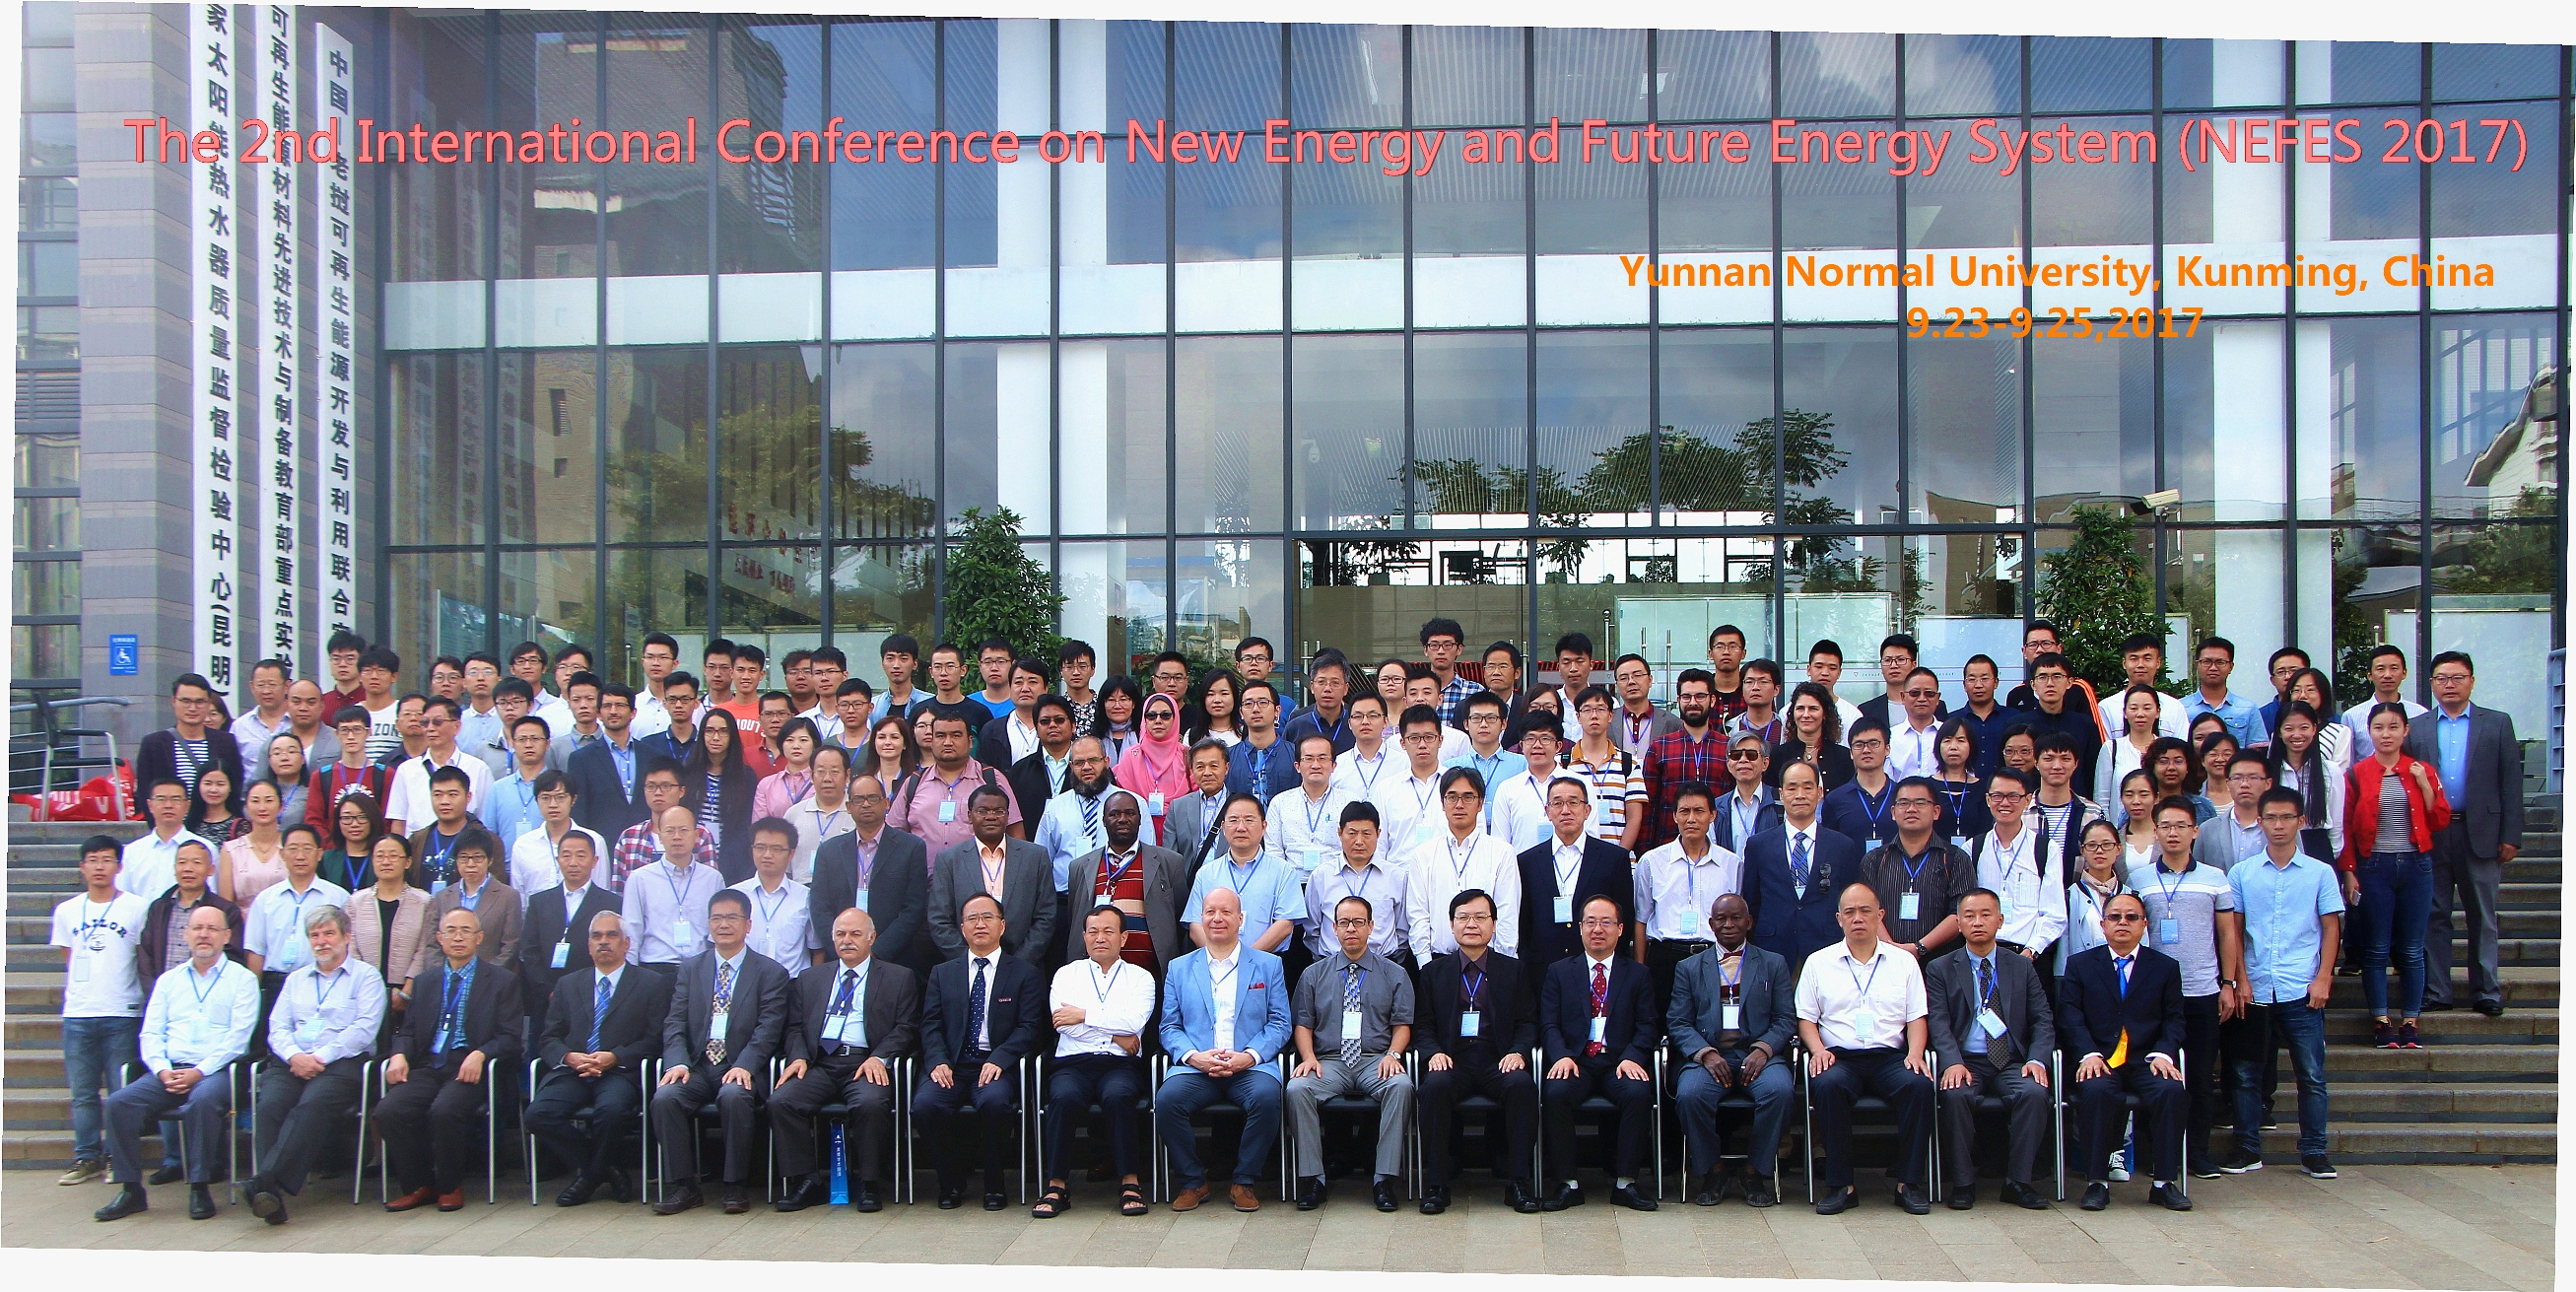 2nd International Conference on New Energy and Futre Energy Systems (NEFES 2017), Yunnan Normal University, Kunming, P.R. China: 23-25 September 2017